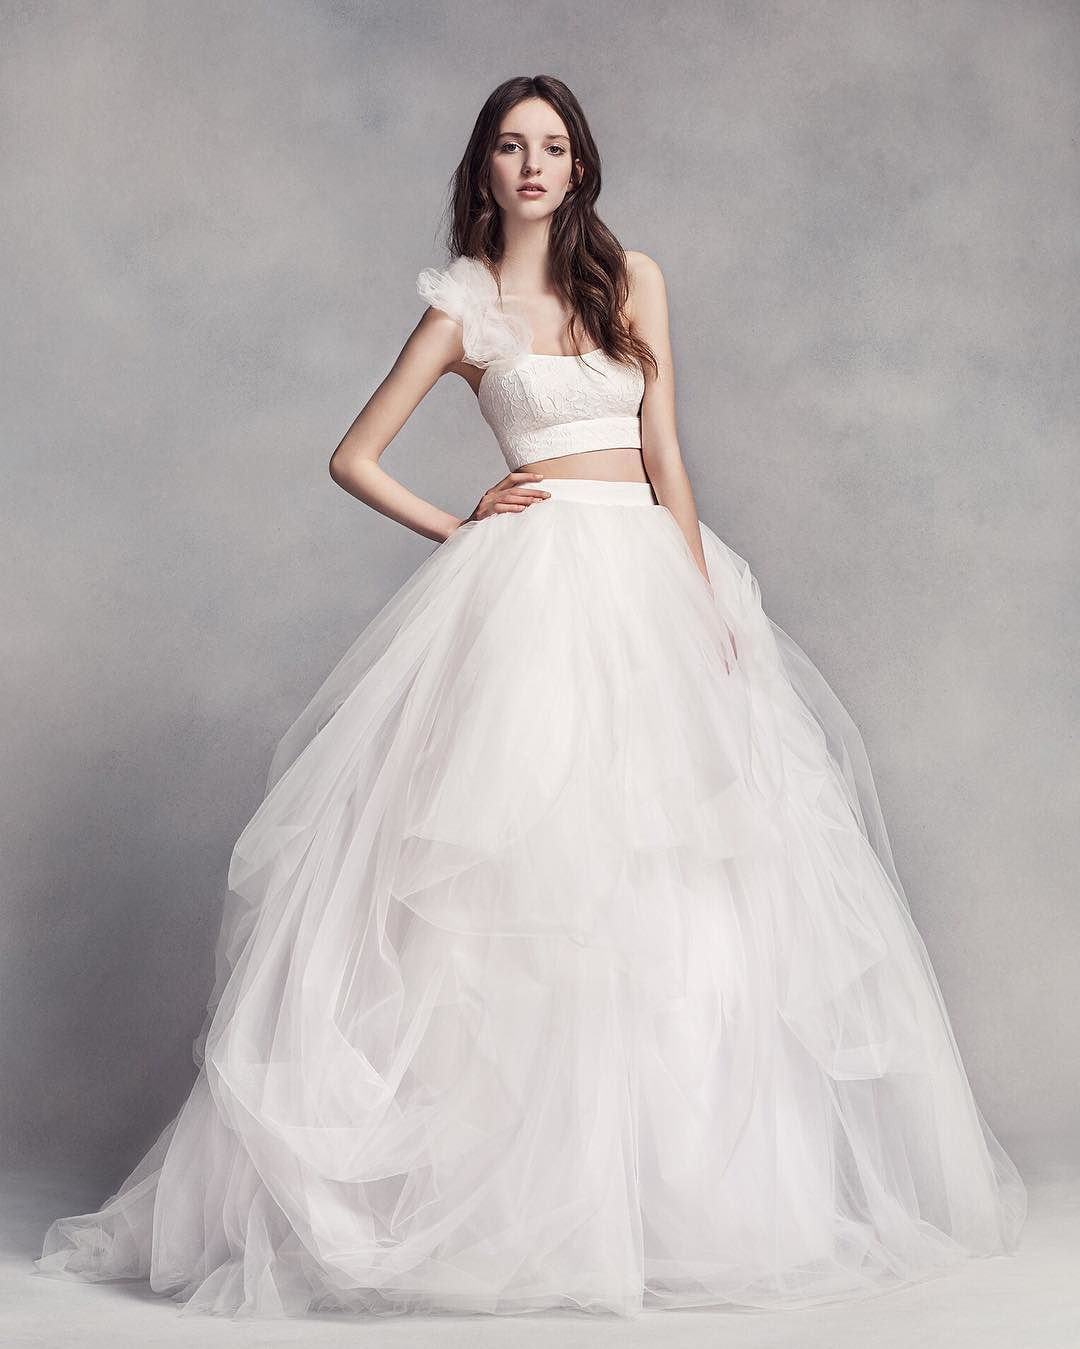 Design wedding dress  For the fashionforward bride chic separates like this White by